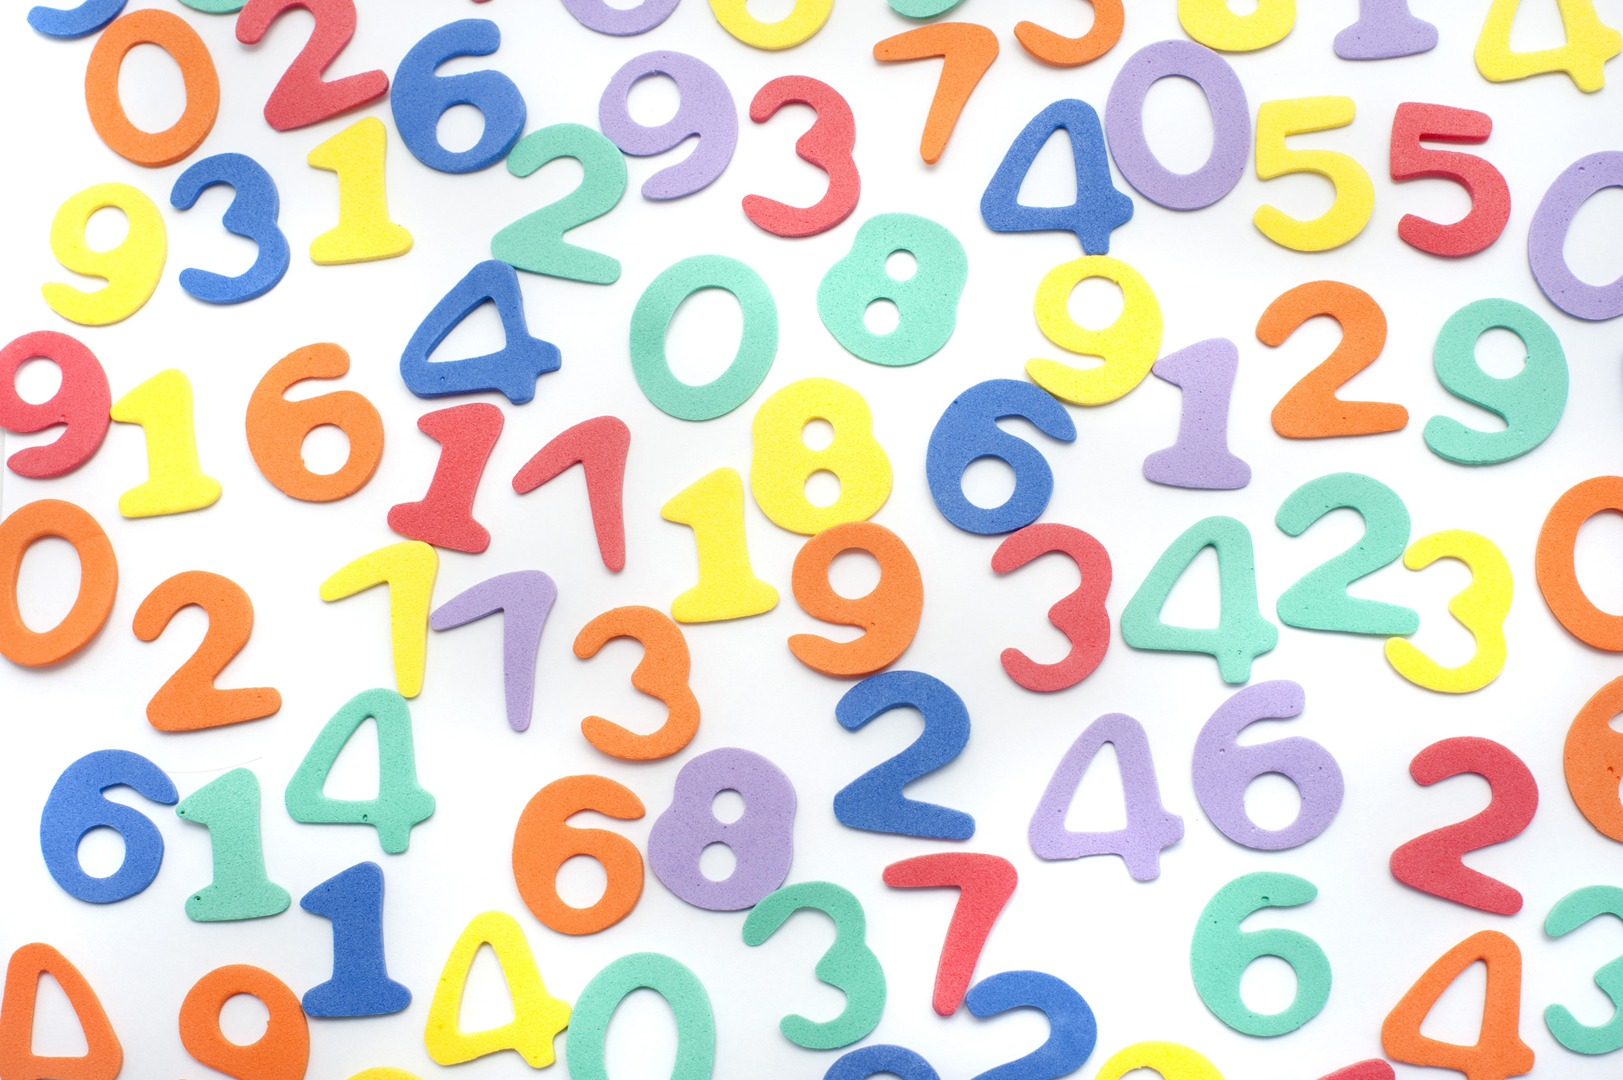 a mix of numbers